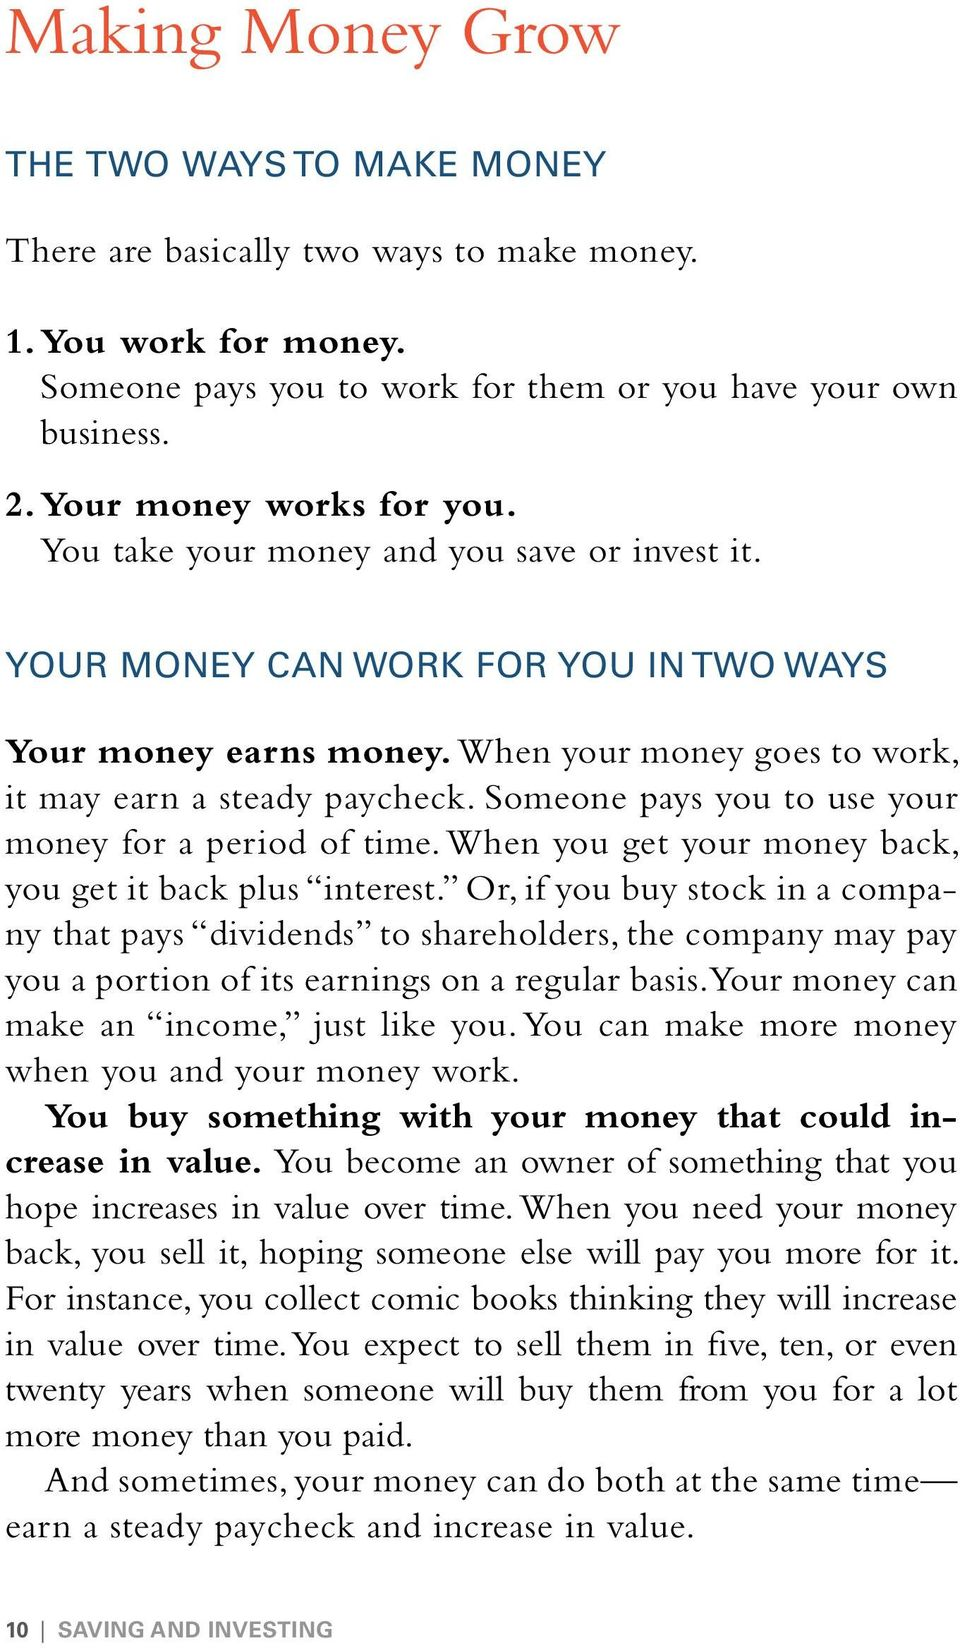 Someone pays you to use your money for a period of time. When you get your money back, you get it back plus interest.